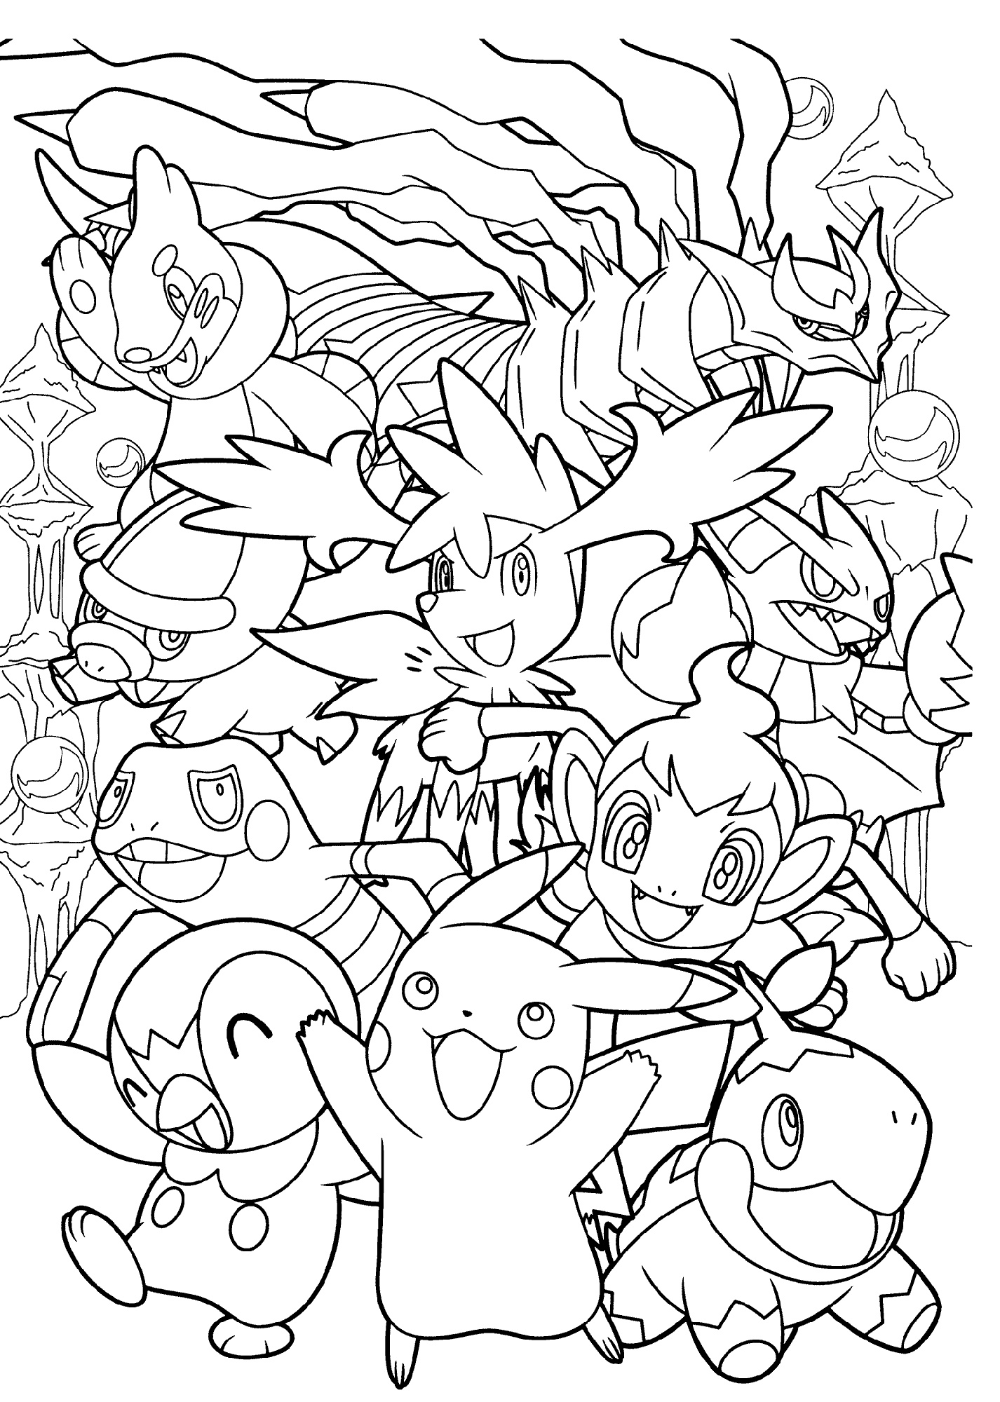 hard pokemon coloring pages 77 elegant gallery of free printable hard coloring pages pokemon coloring pages hard